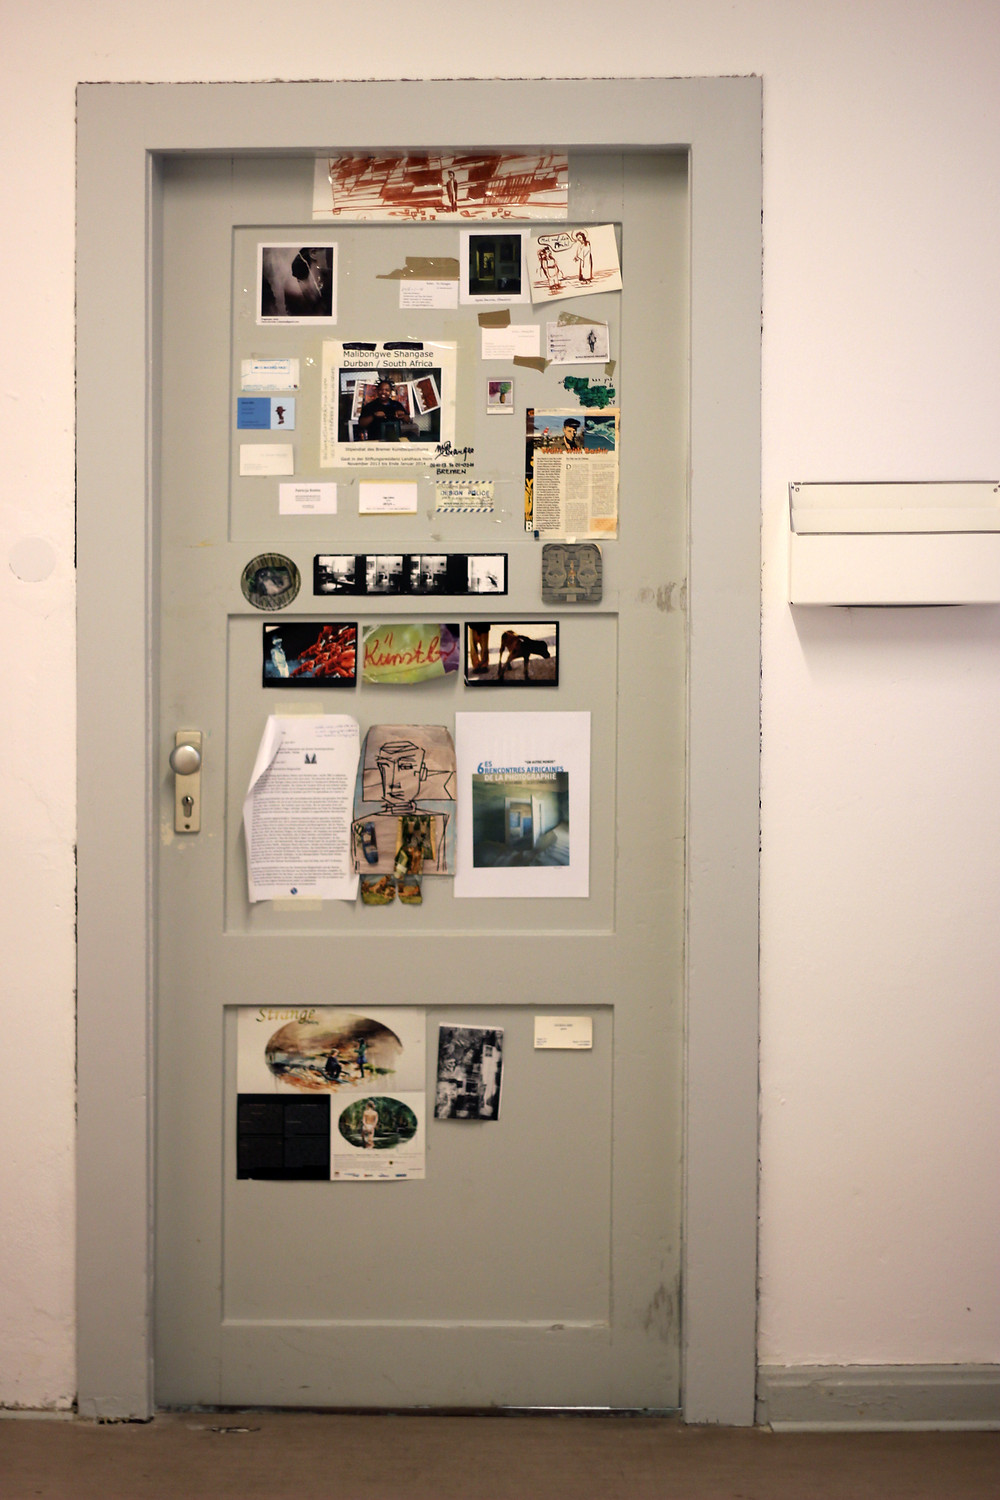 The front door of the apartment for the artists residency. With images and info from previous artists.